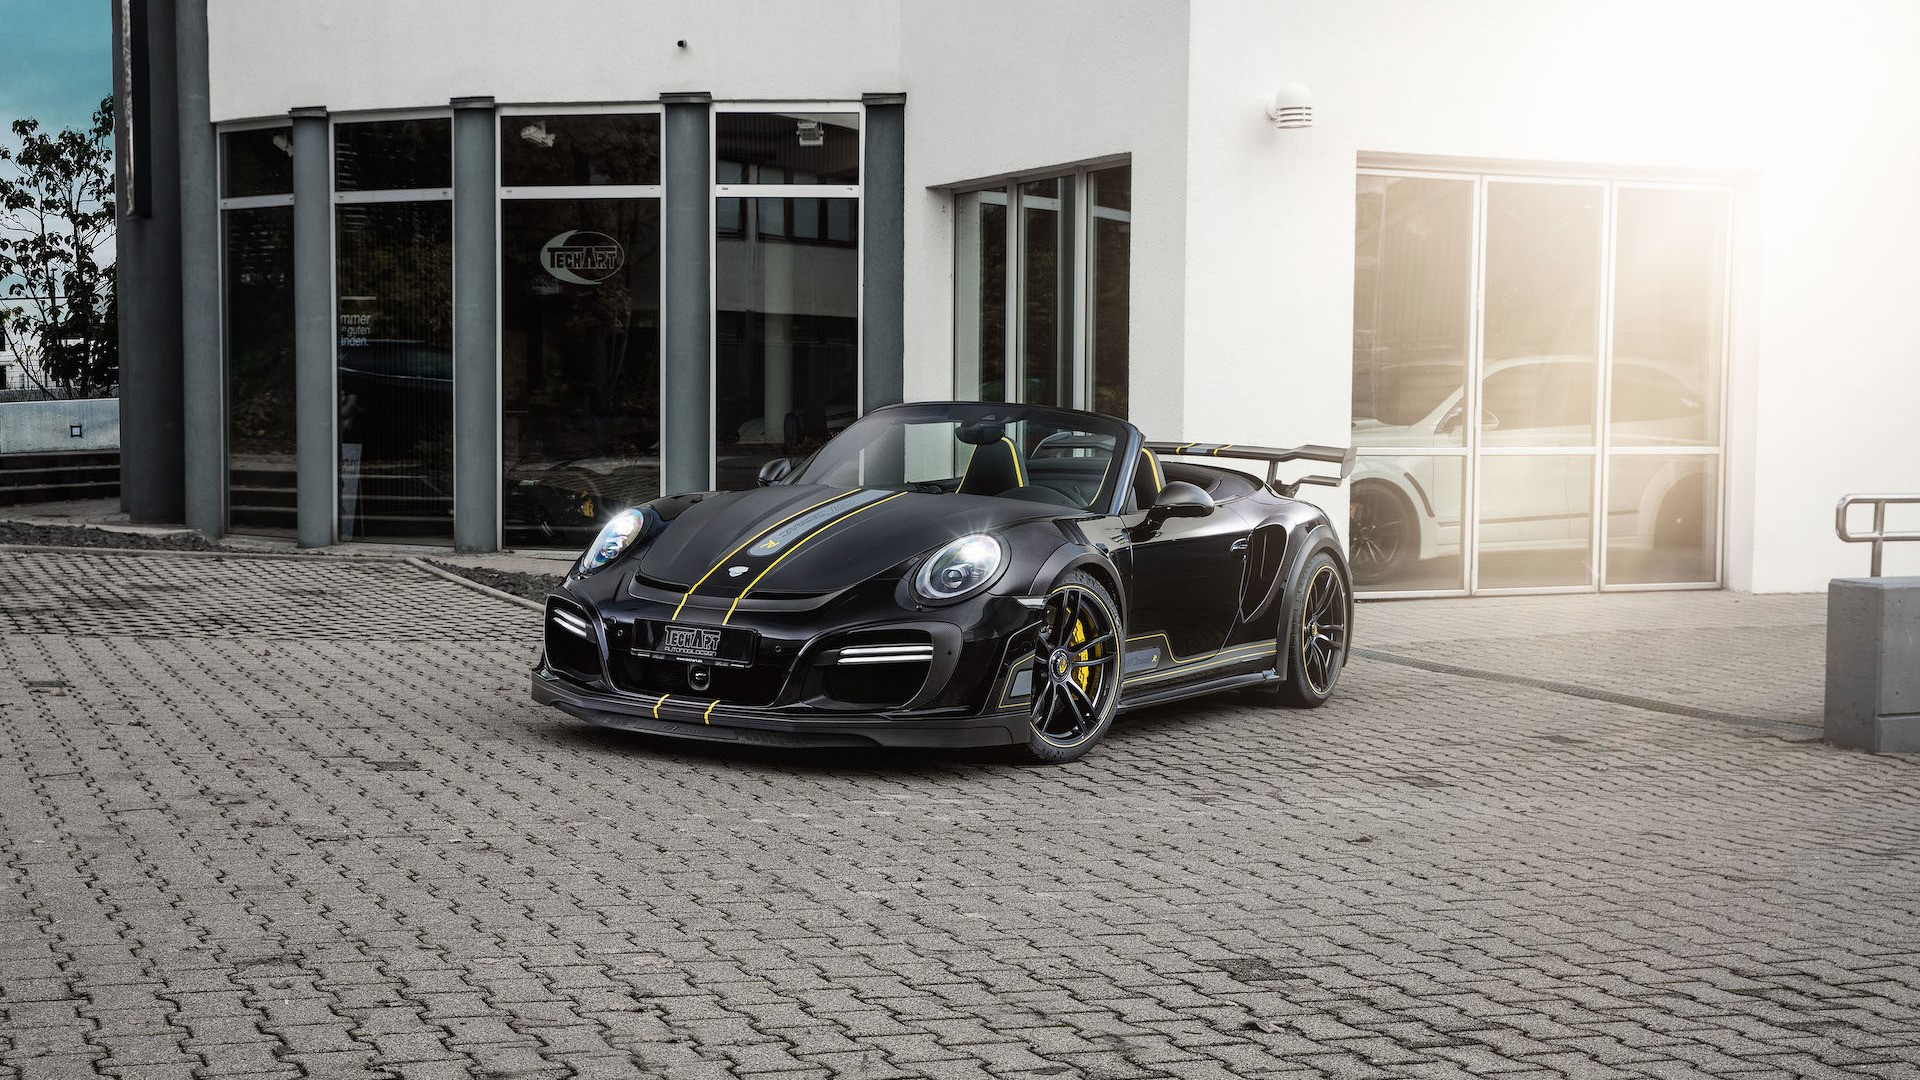 Porsche 911 Turbo Cabriolet po tuningu Techart